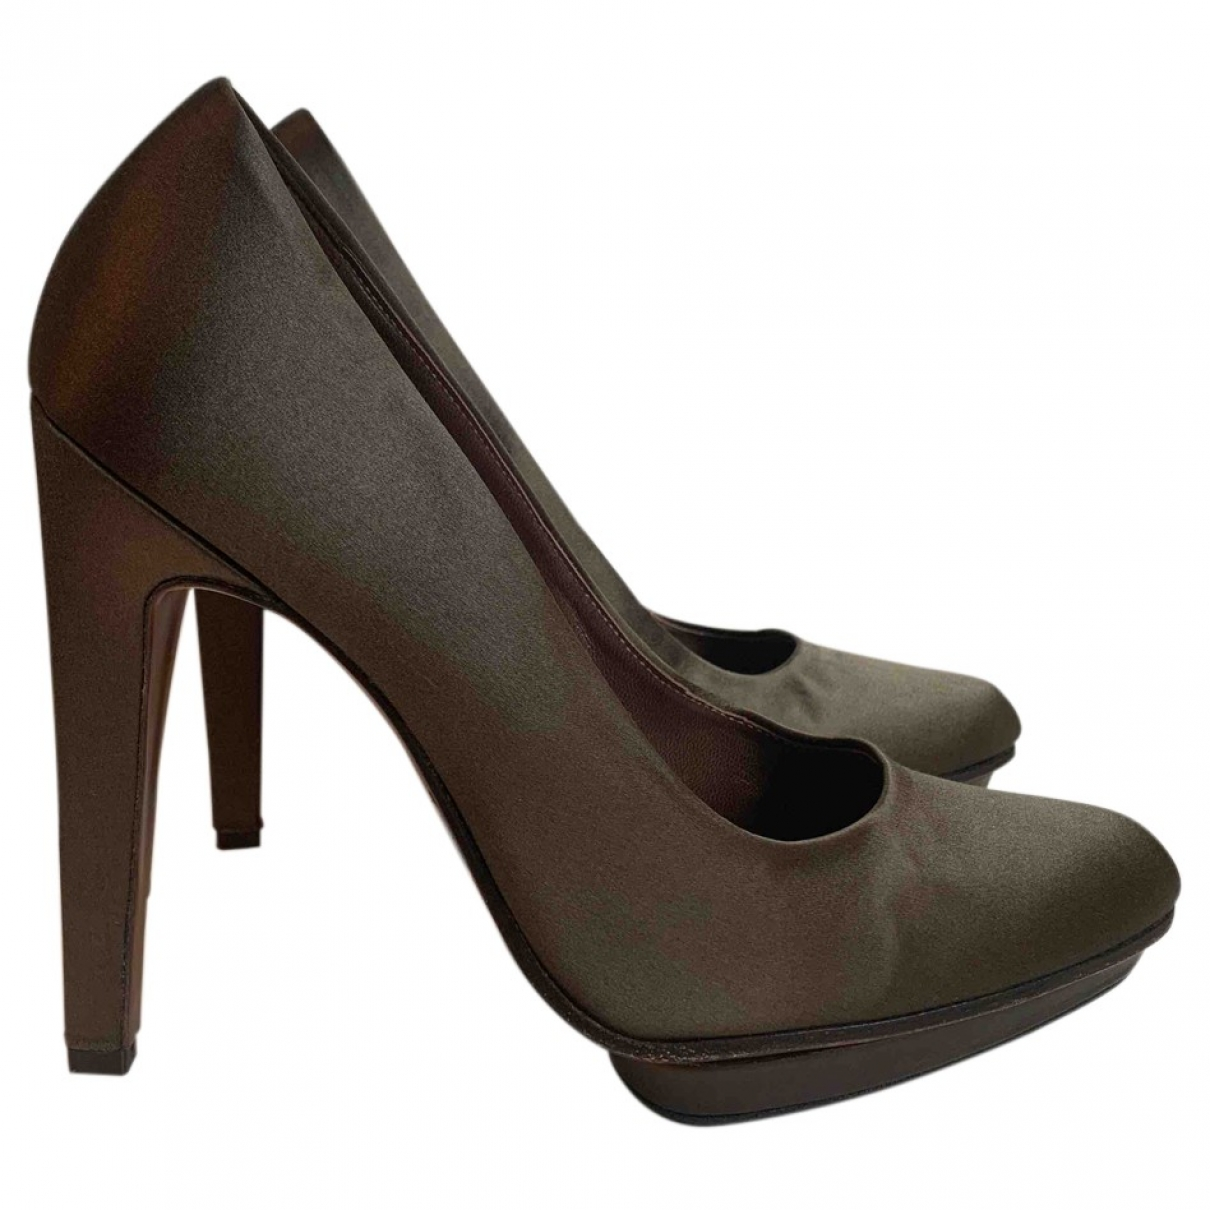 Marni \N Pumps in  Khaki Leinen